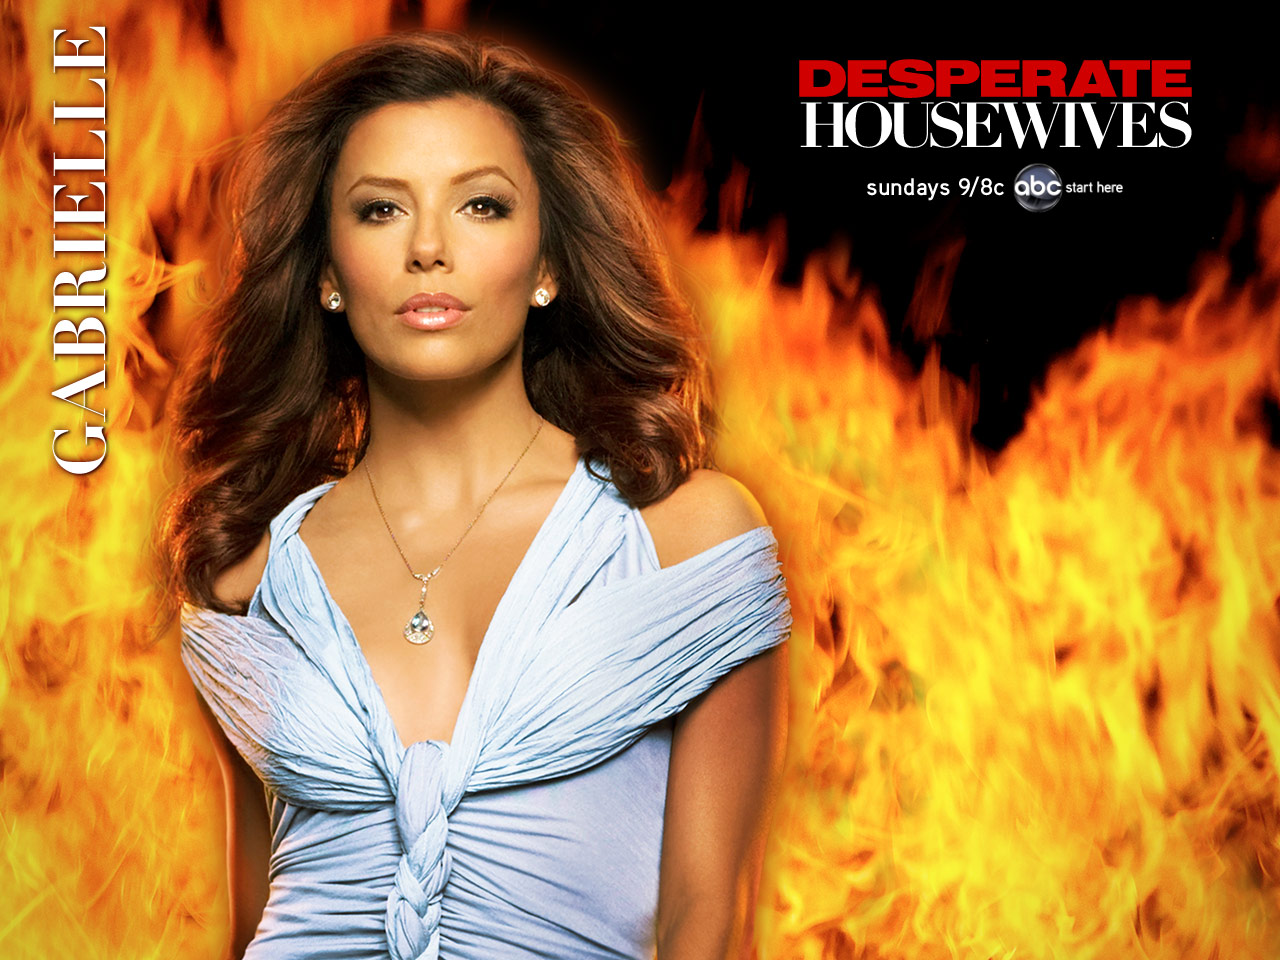 Desperate housewives eva longoria amp under her dress